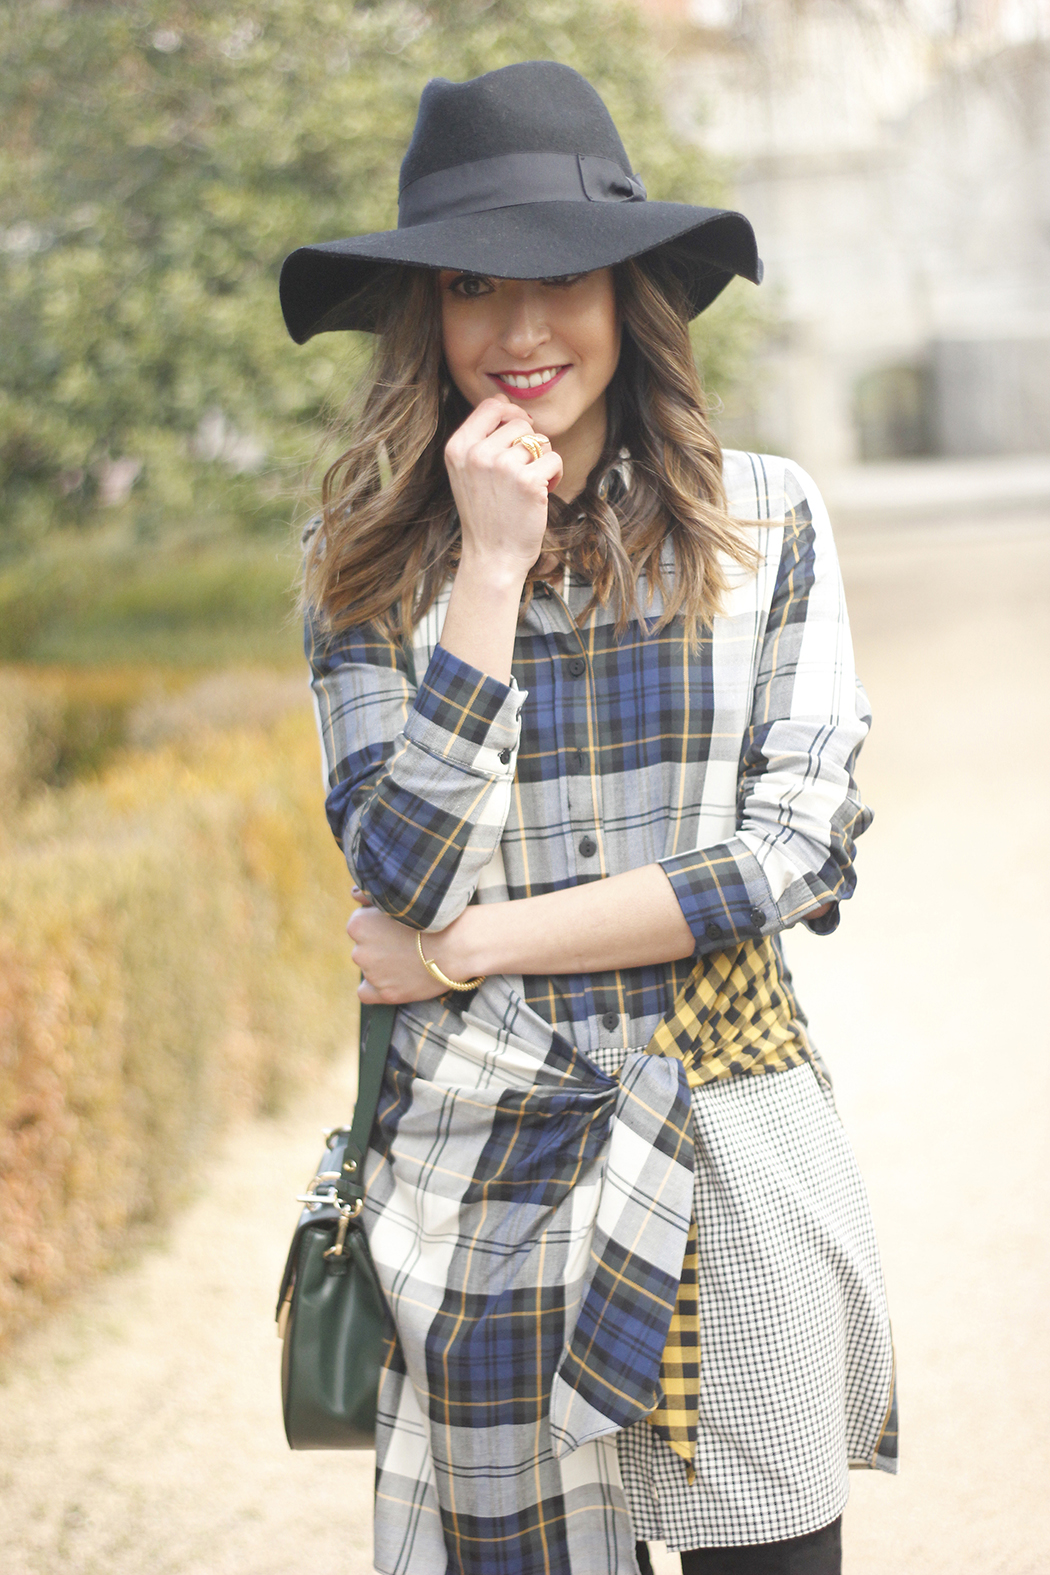 Tartan shirt dress zara over the knee boots mango hat green bag outfit fashion11